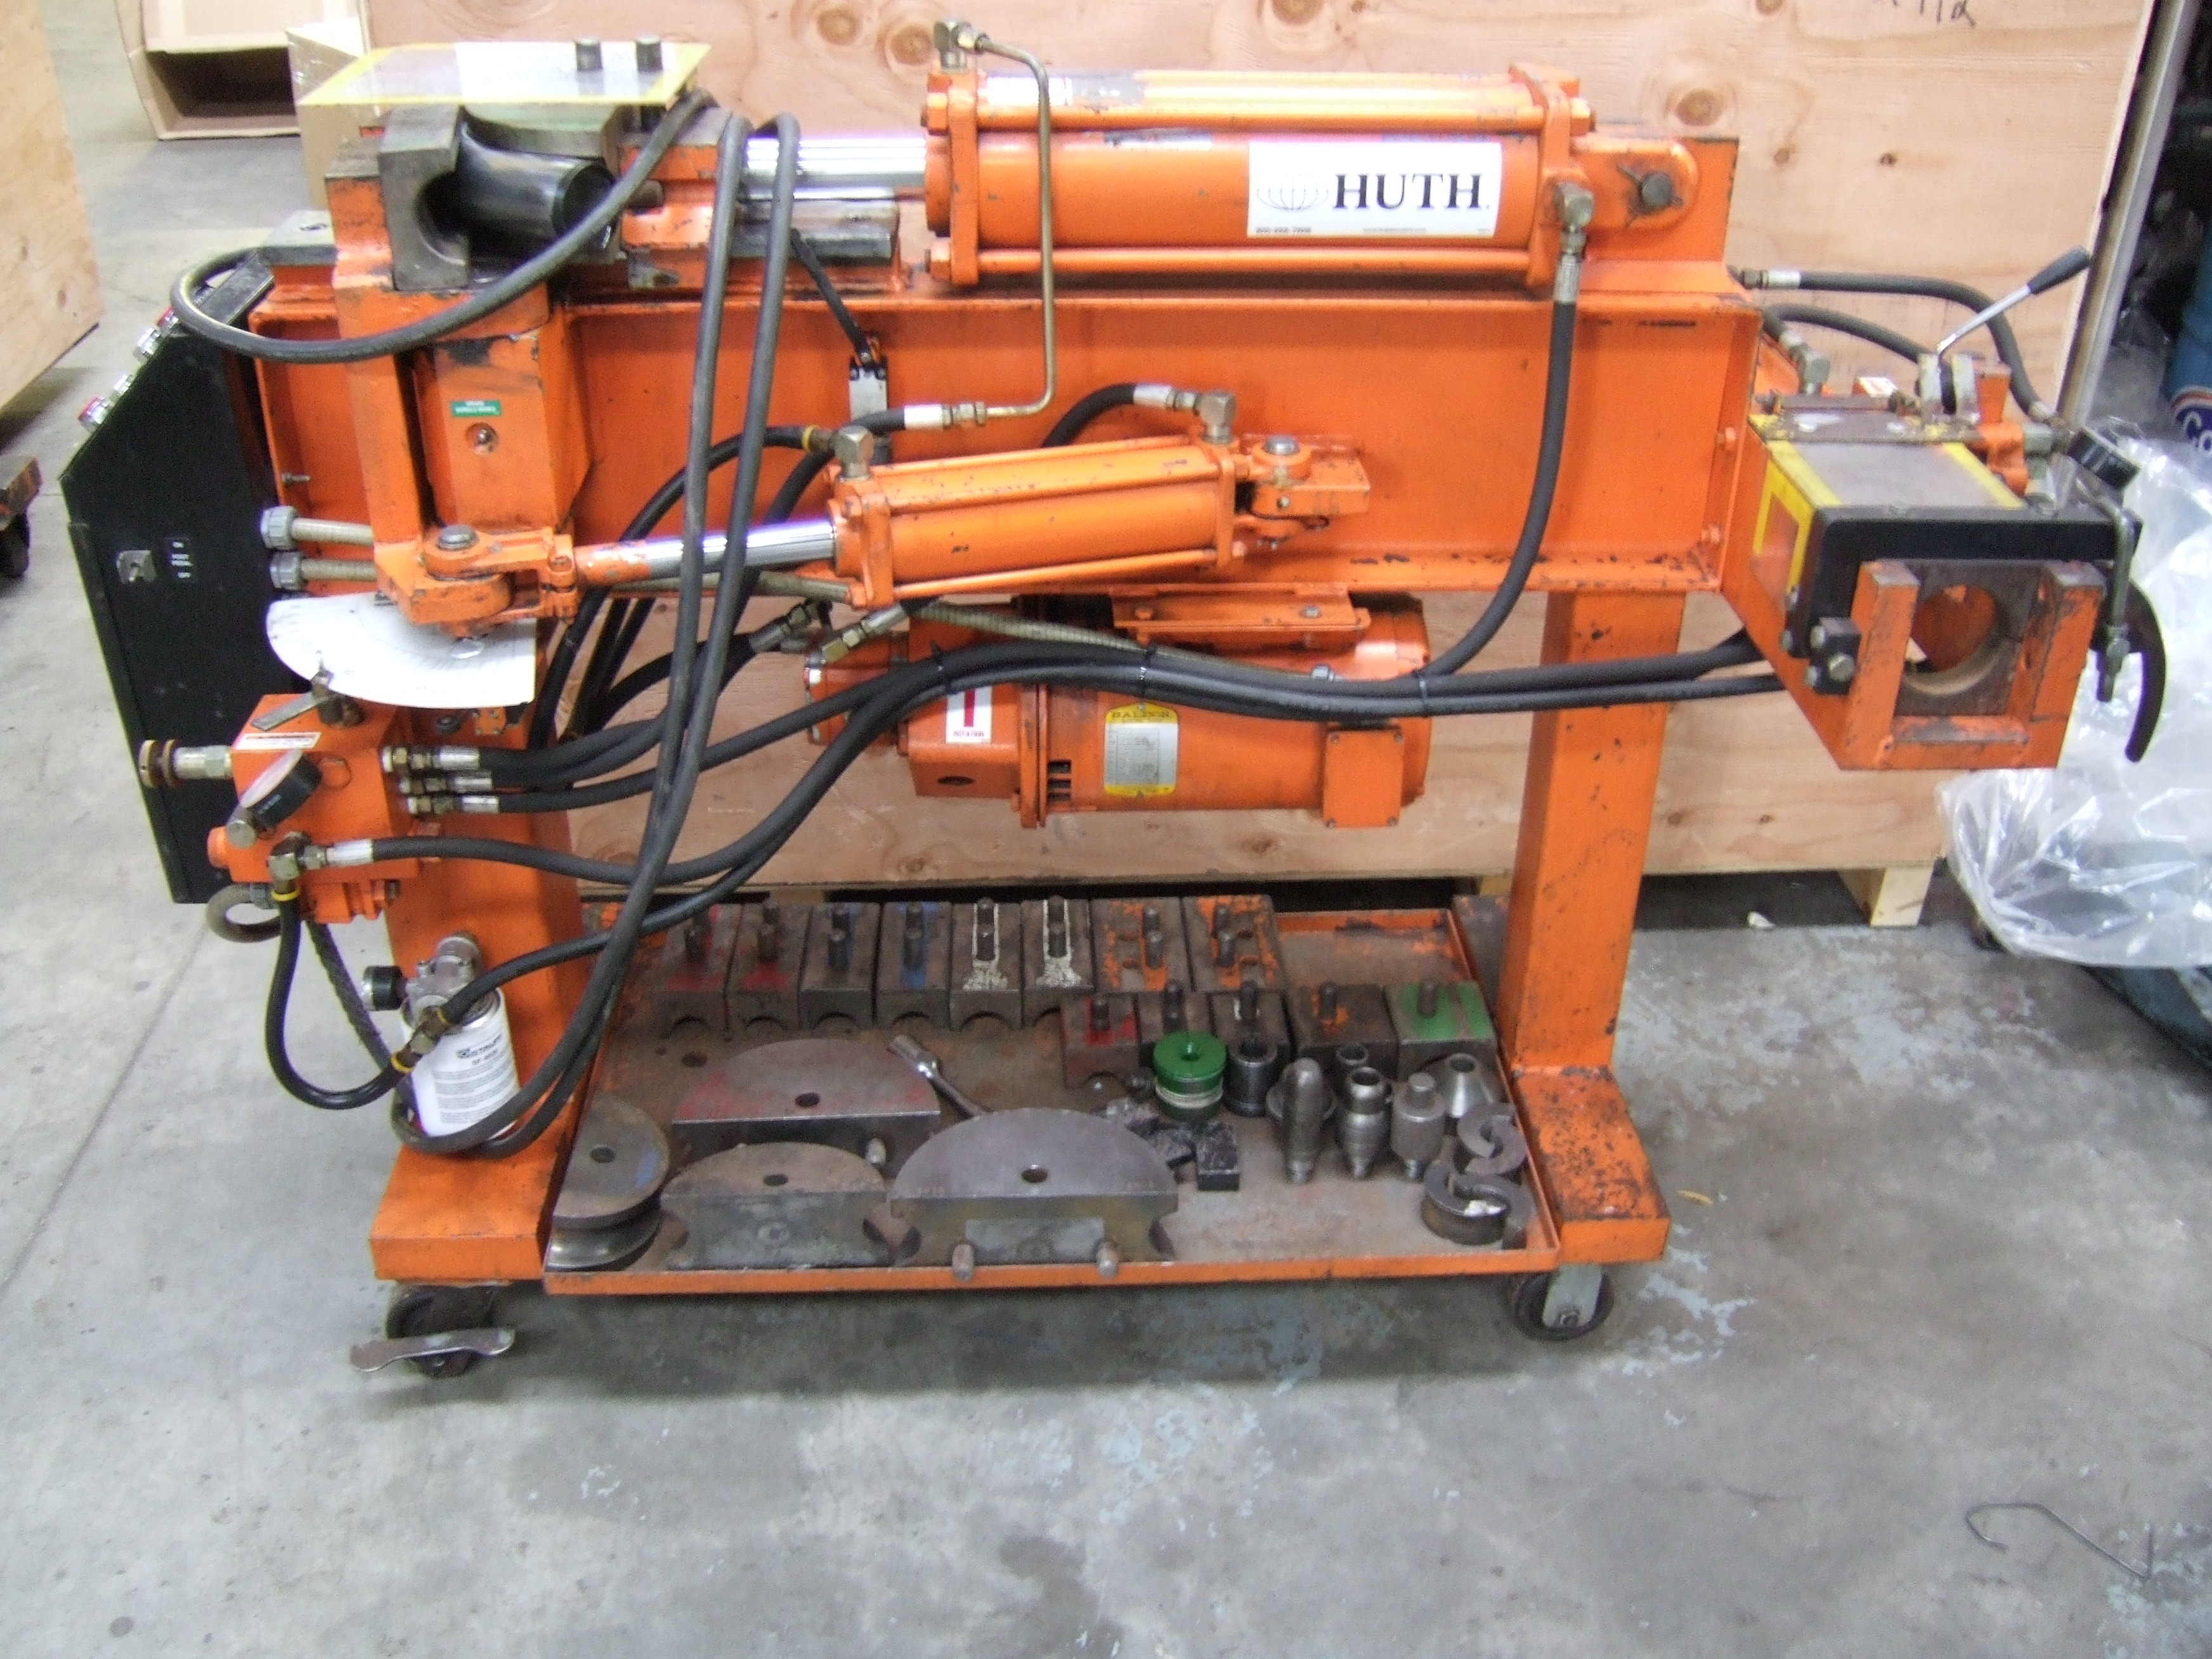 Photo Huth HB2801 Exhaust Bending Machine with Tooling - Exhaust Pipe Bender